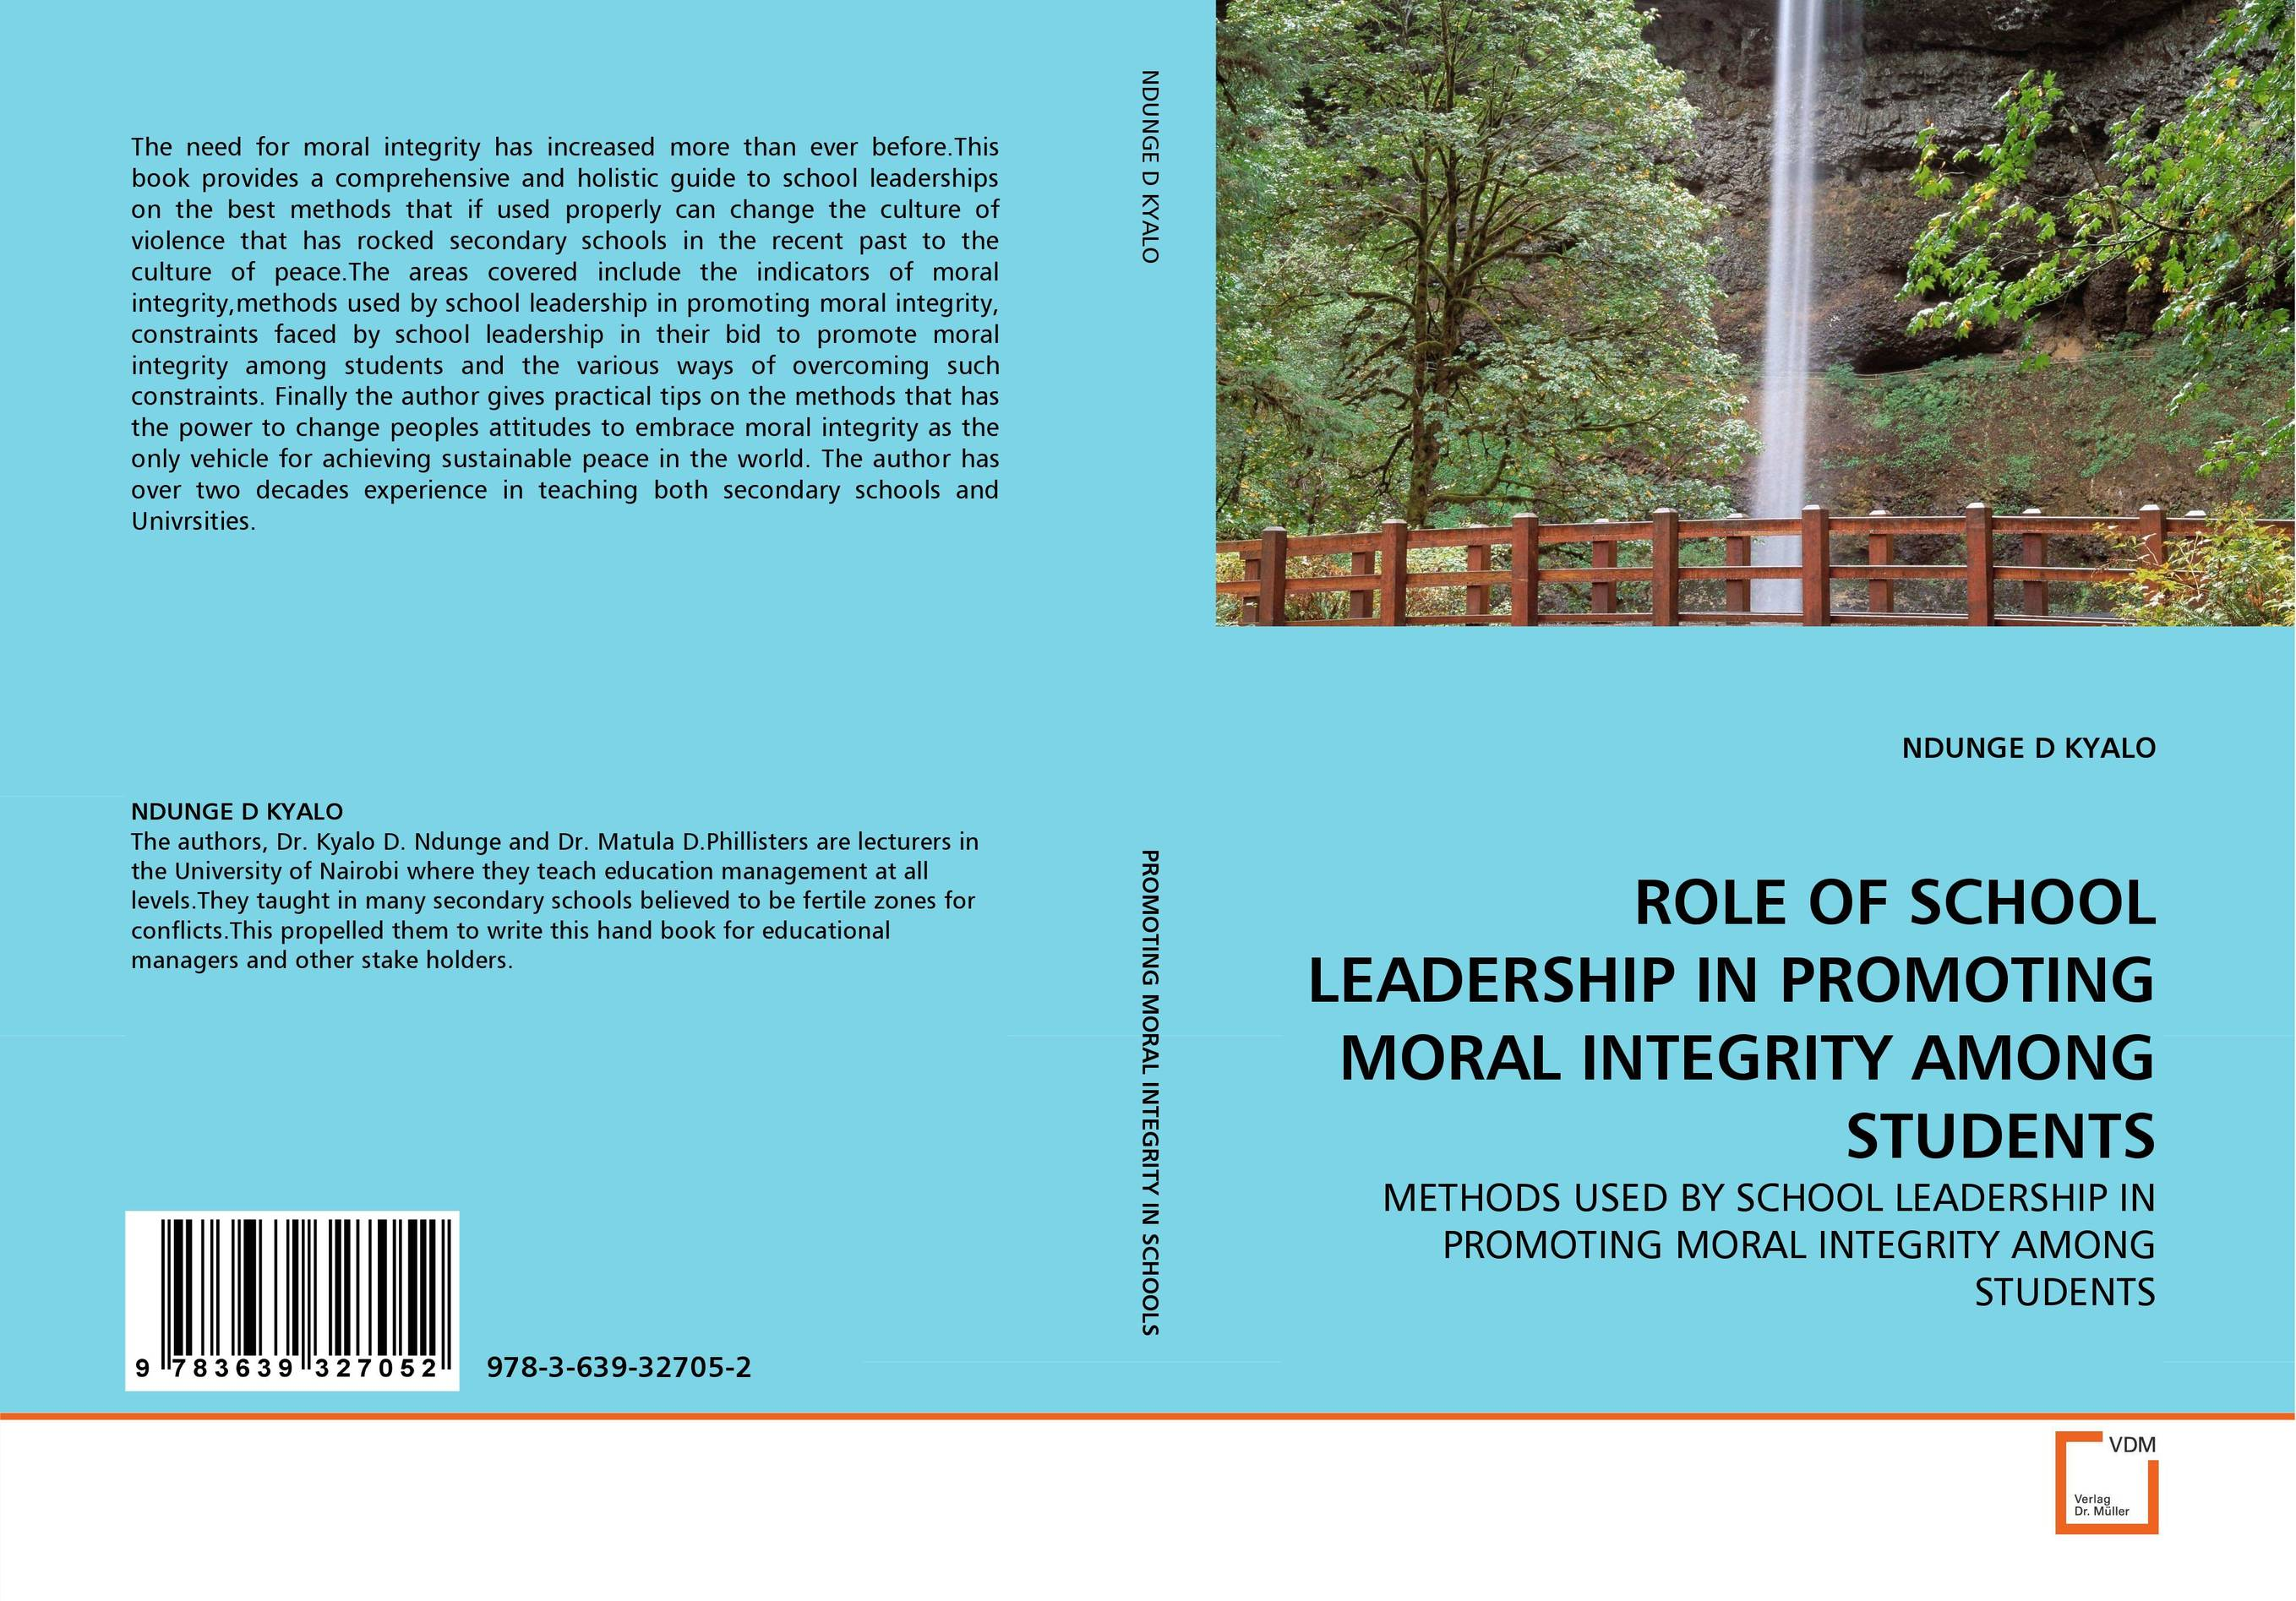 ROLE OF SCHOOL LEADERSHIP IN PROMOTING MORAL INTEGRITY AMONG STUDENTS liebherr cuwb 3311